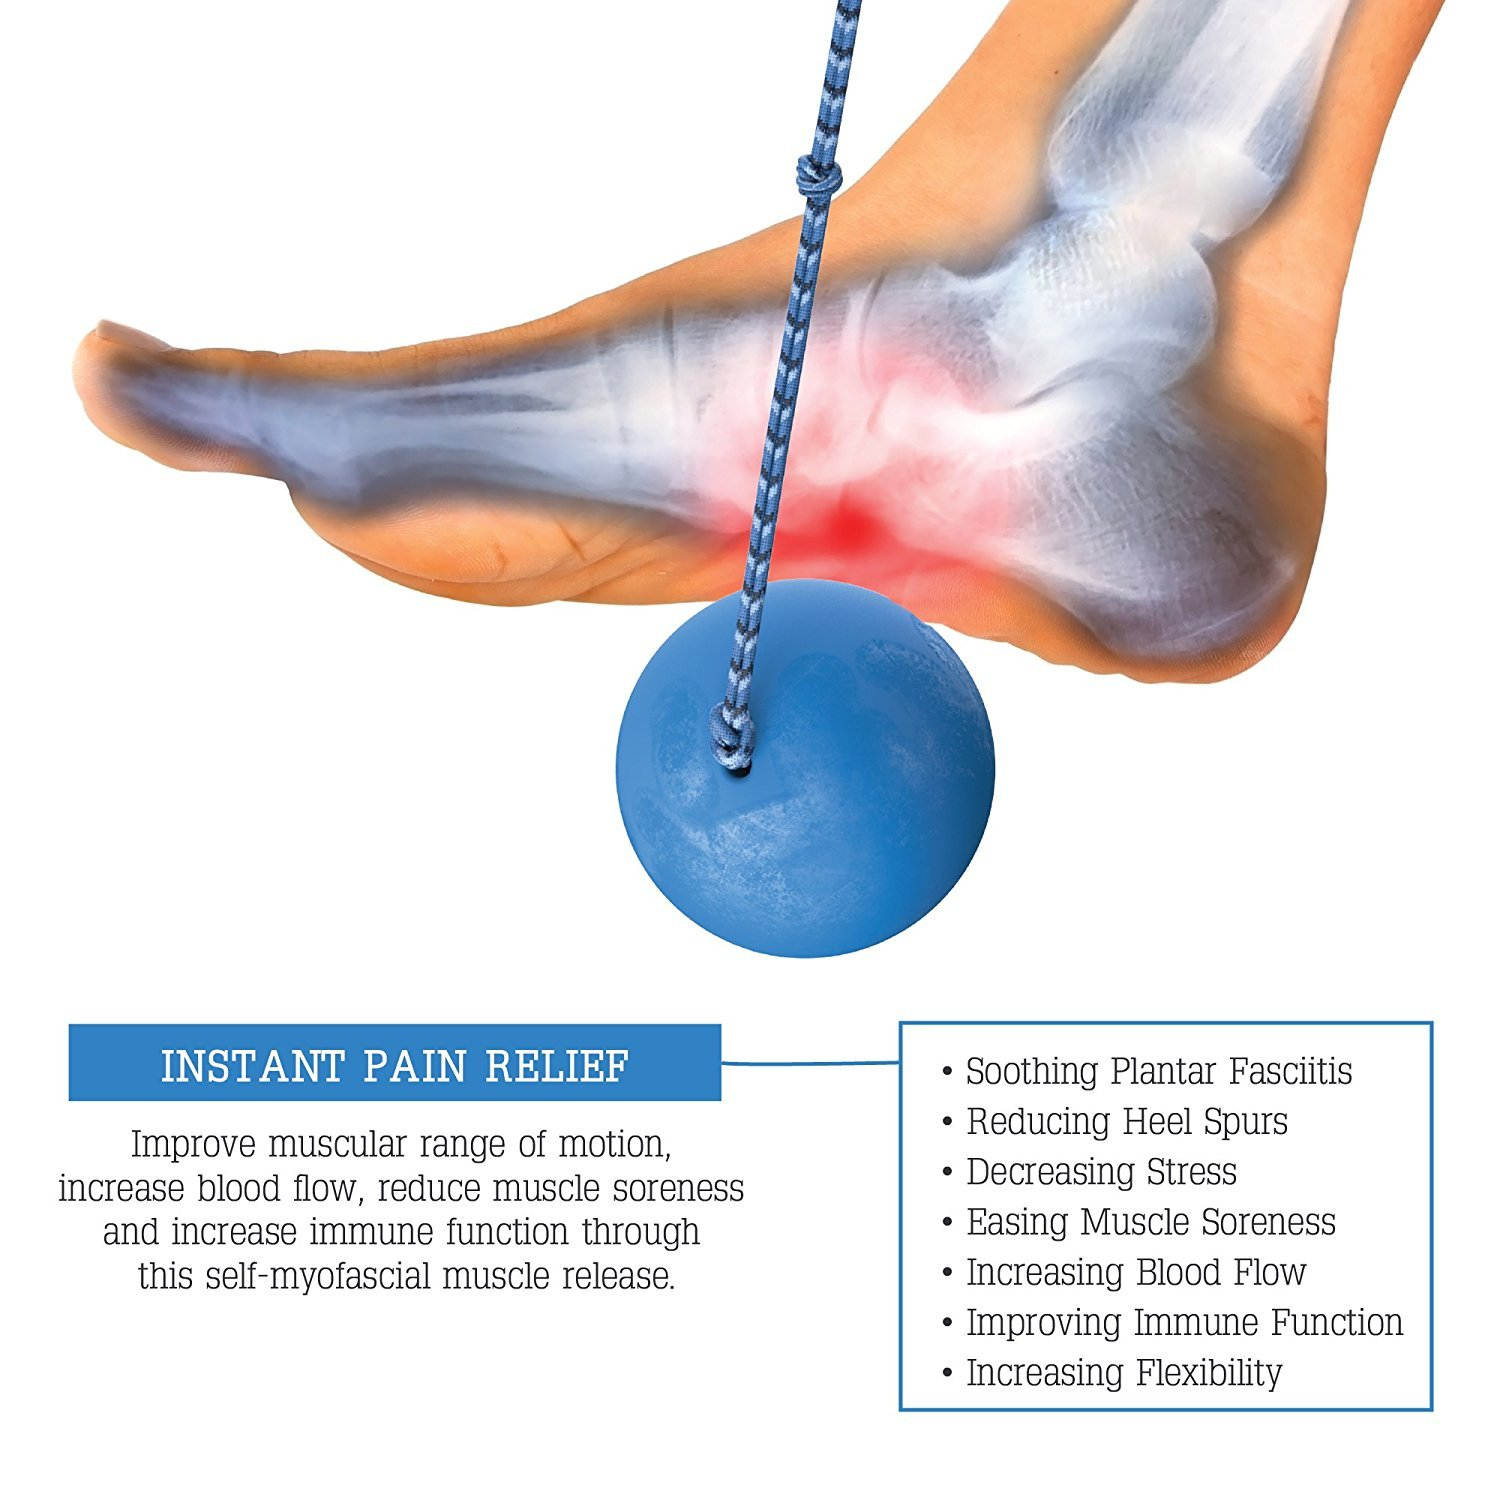 CombOhBall - Plantar Facitis Relief - The Ice Cold SnOh Ball + Original OhBall Foot Massage Ball Combo With Paracord Handles - Fastest Long-term Foot Pain Relief Guaranteed - Targets Plantar Fasciitis by The Oh Ball (Image #3)